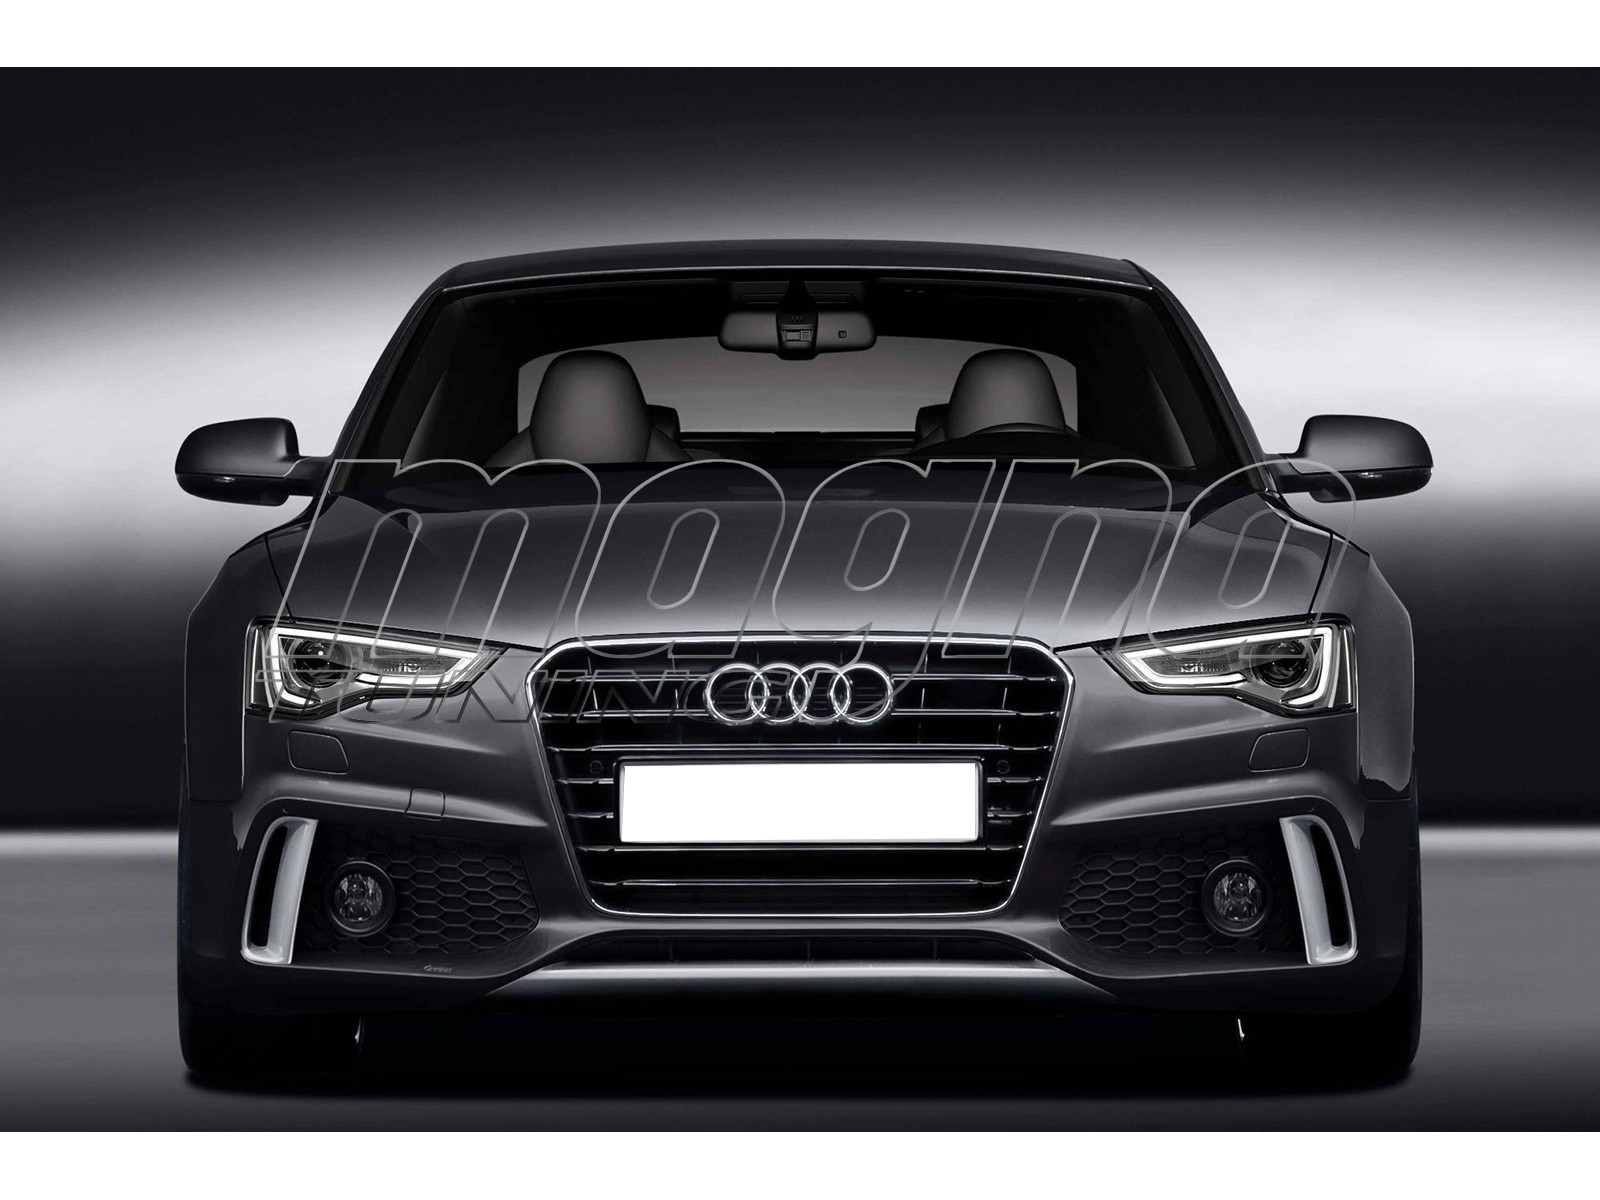 audi a5 8t facelift sportback cx body kit. Black Bedroom Furniture Sets. Home Design Ideas